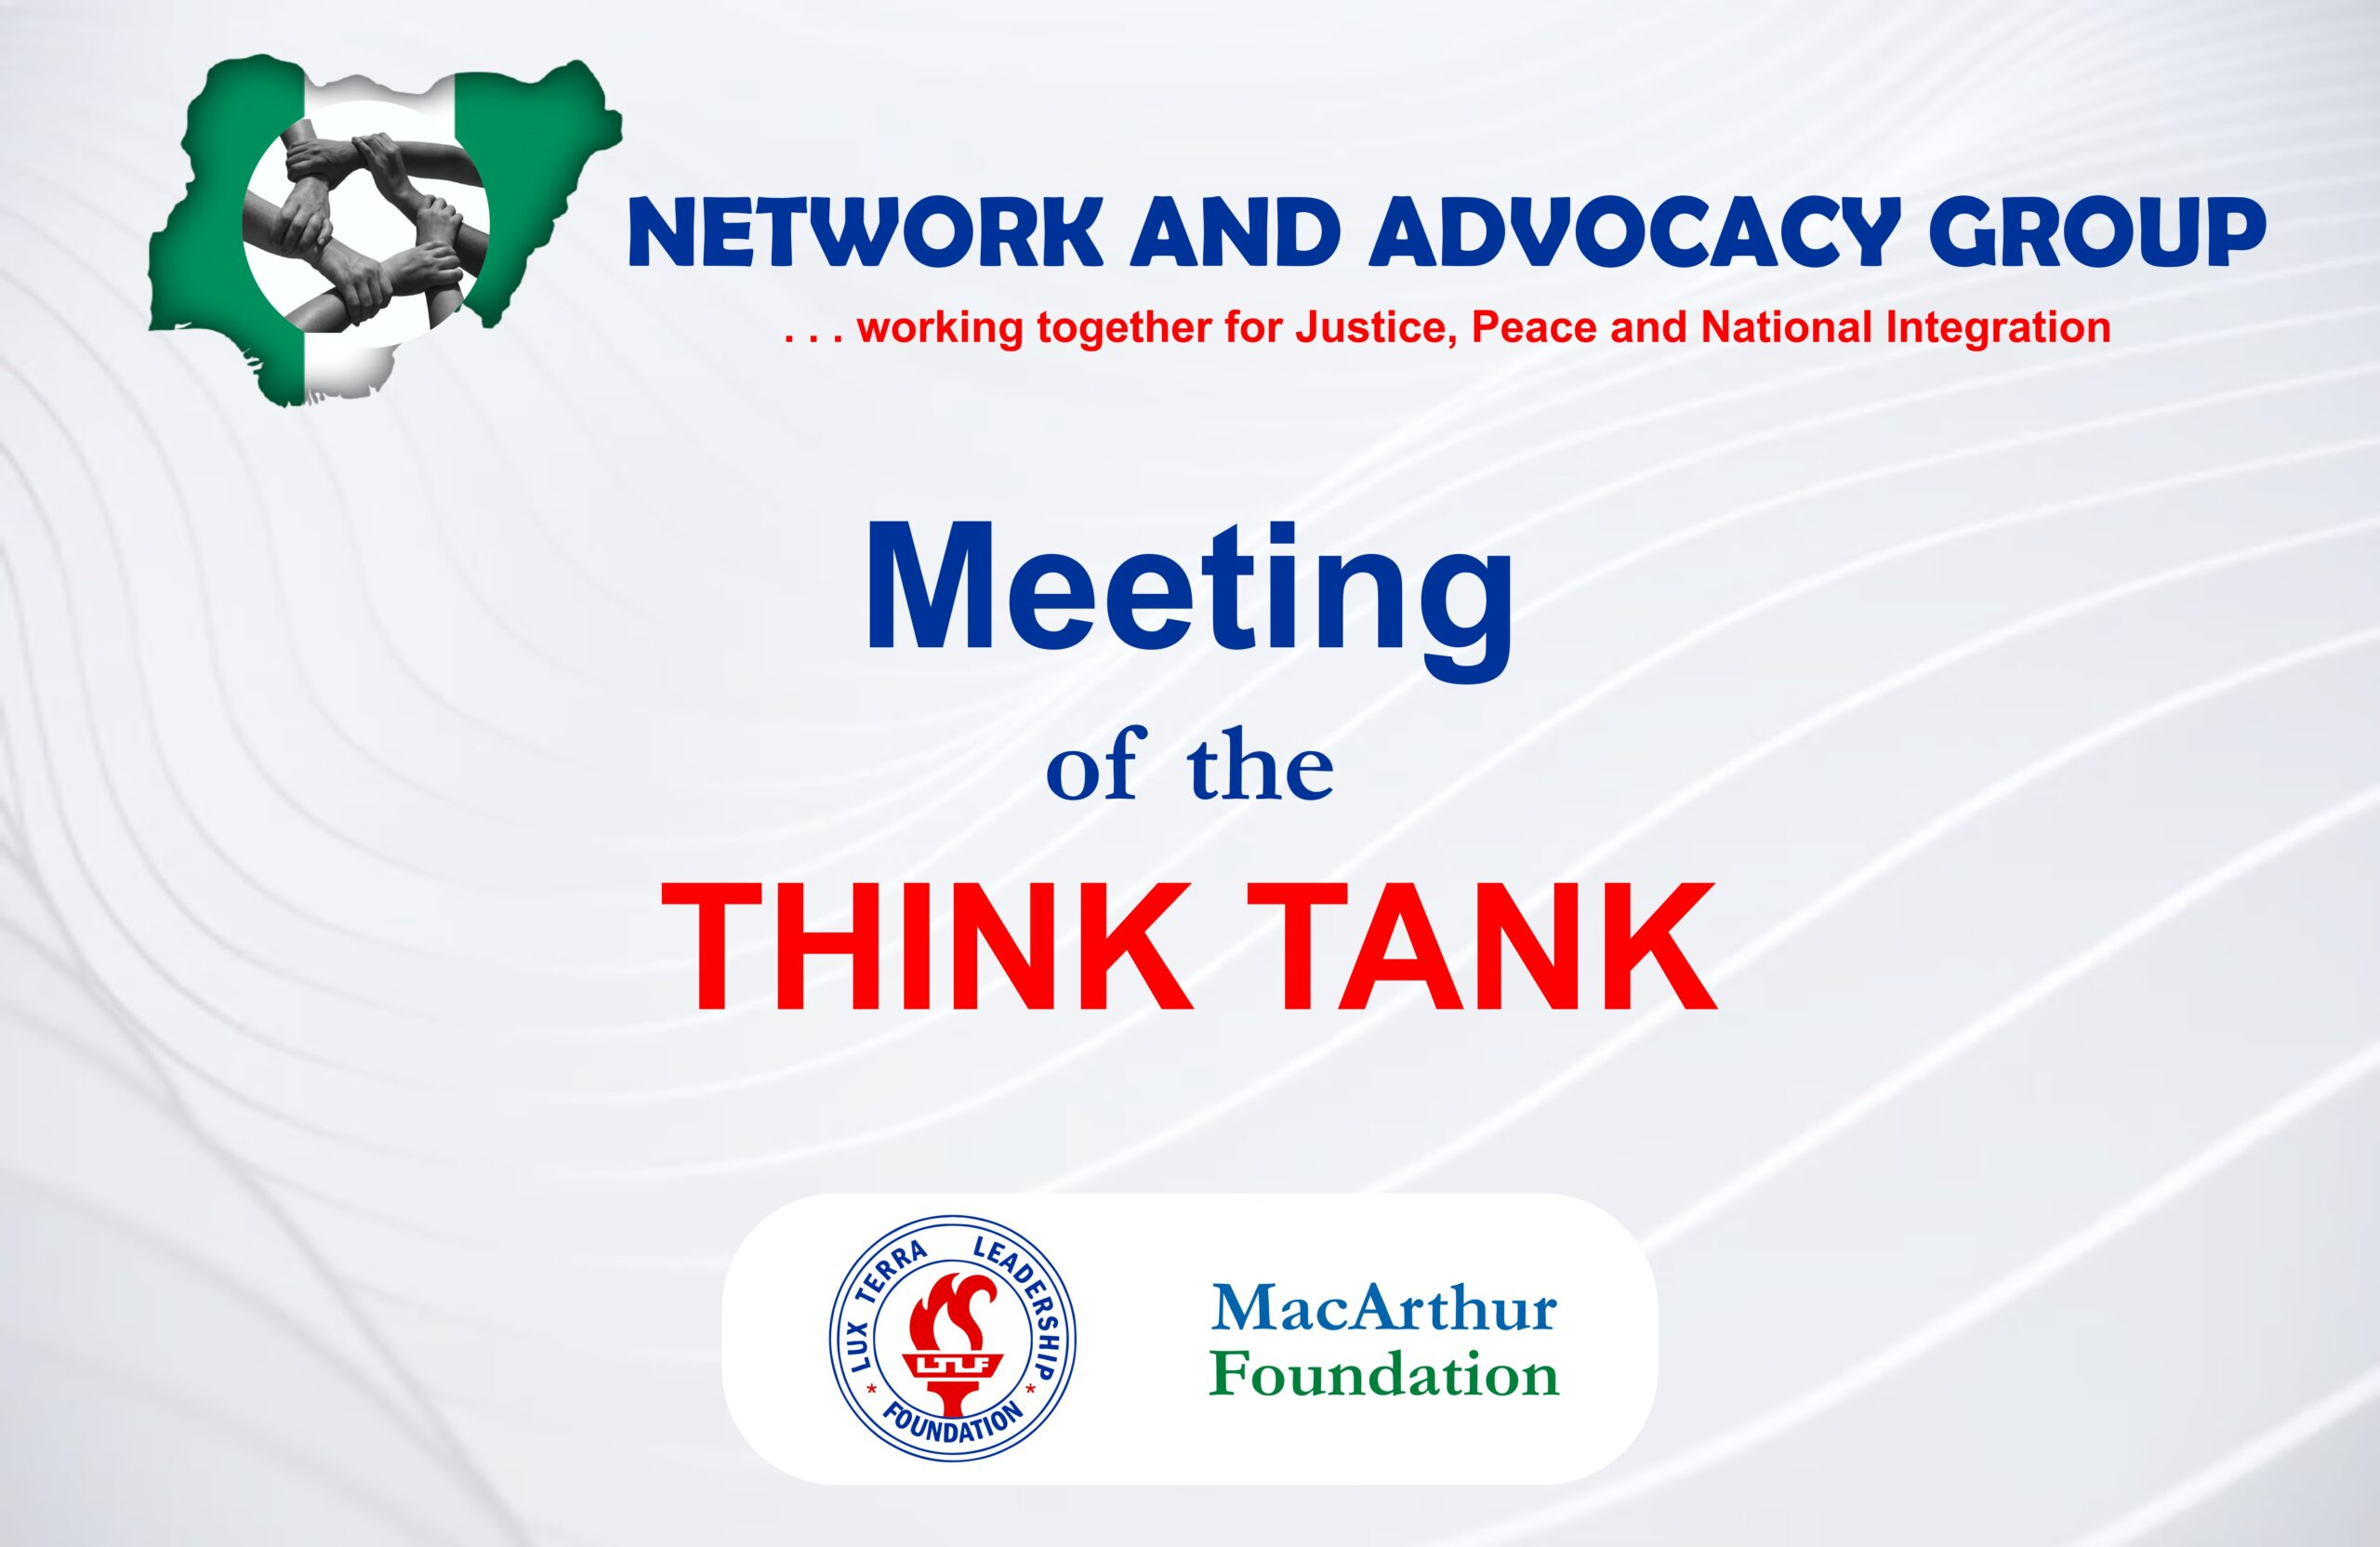 LUX TERRA NETWORK AND ADVOCACY GROUP HOLDS FIFTH MEETING OF THE THINK TANK. EXPRESS OPTIMISM ON SURMOUNTING CURRENT SECURITY CHALLENGES